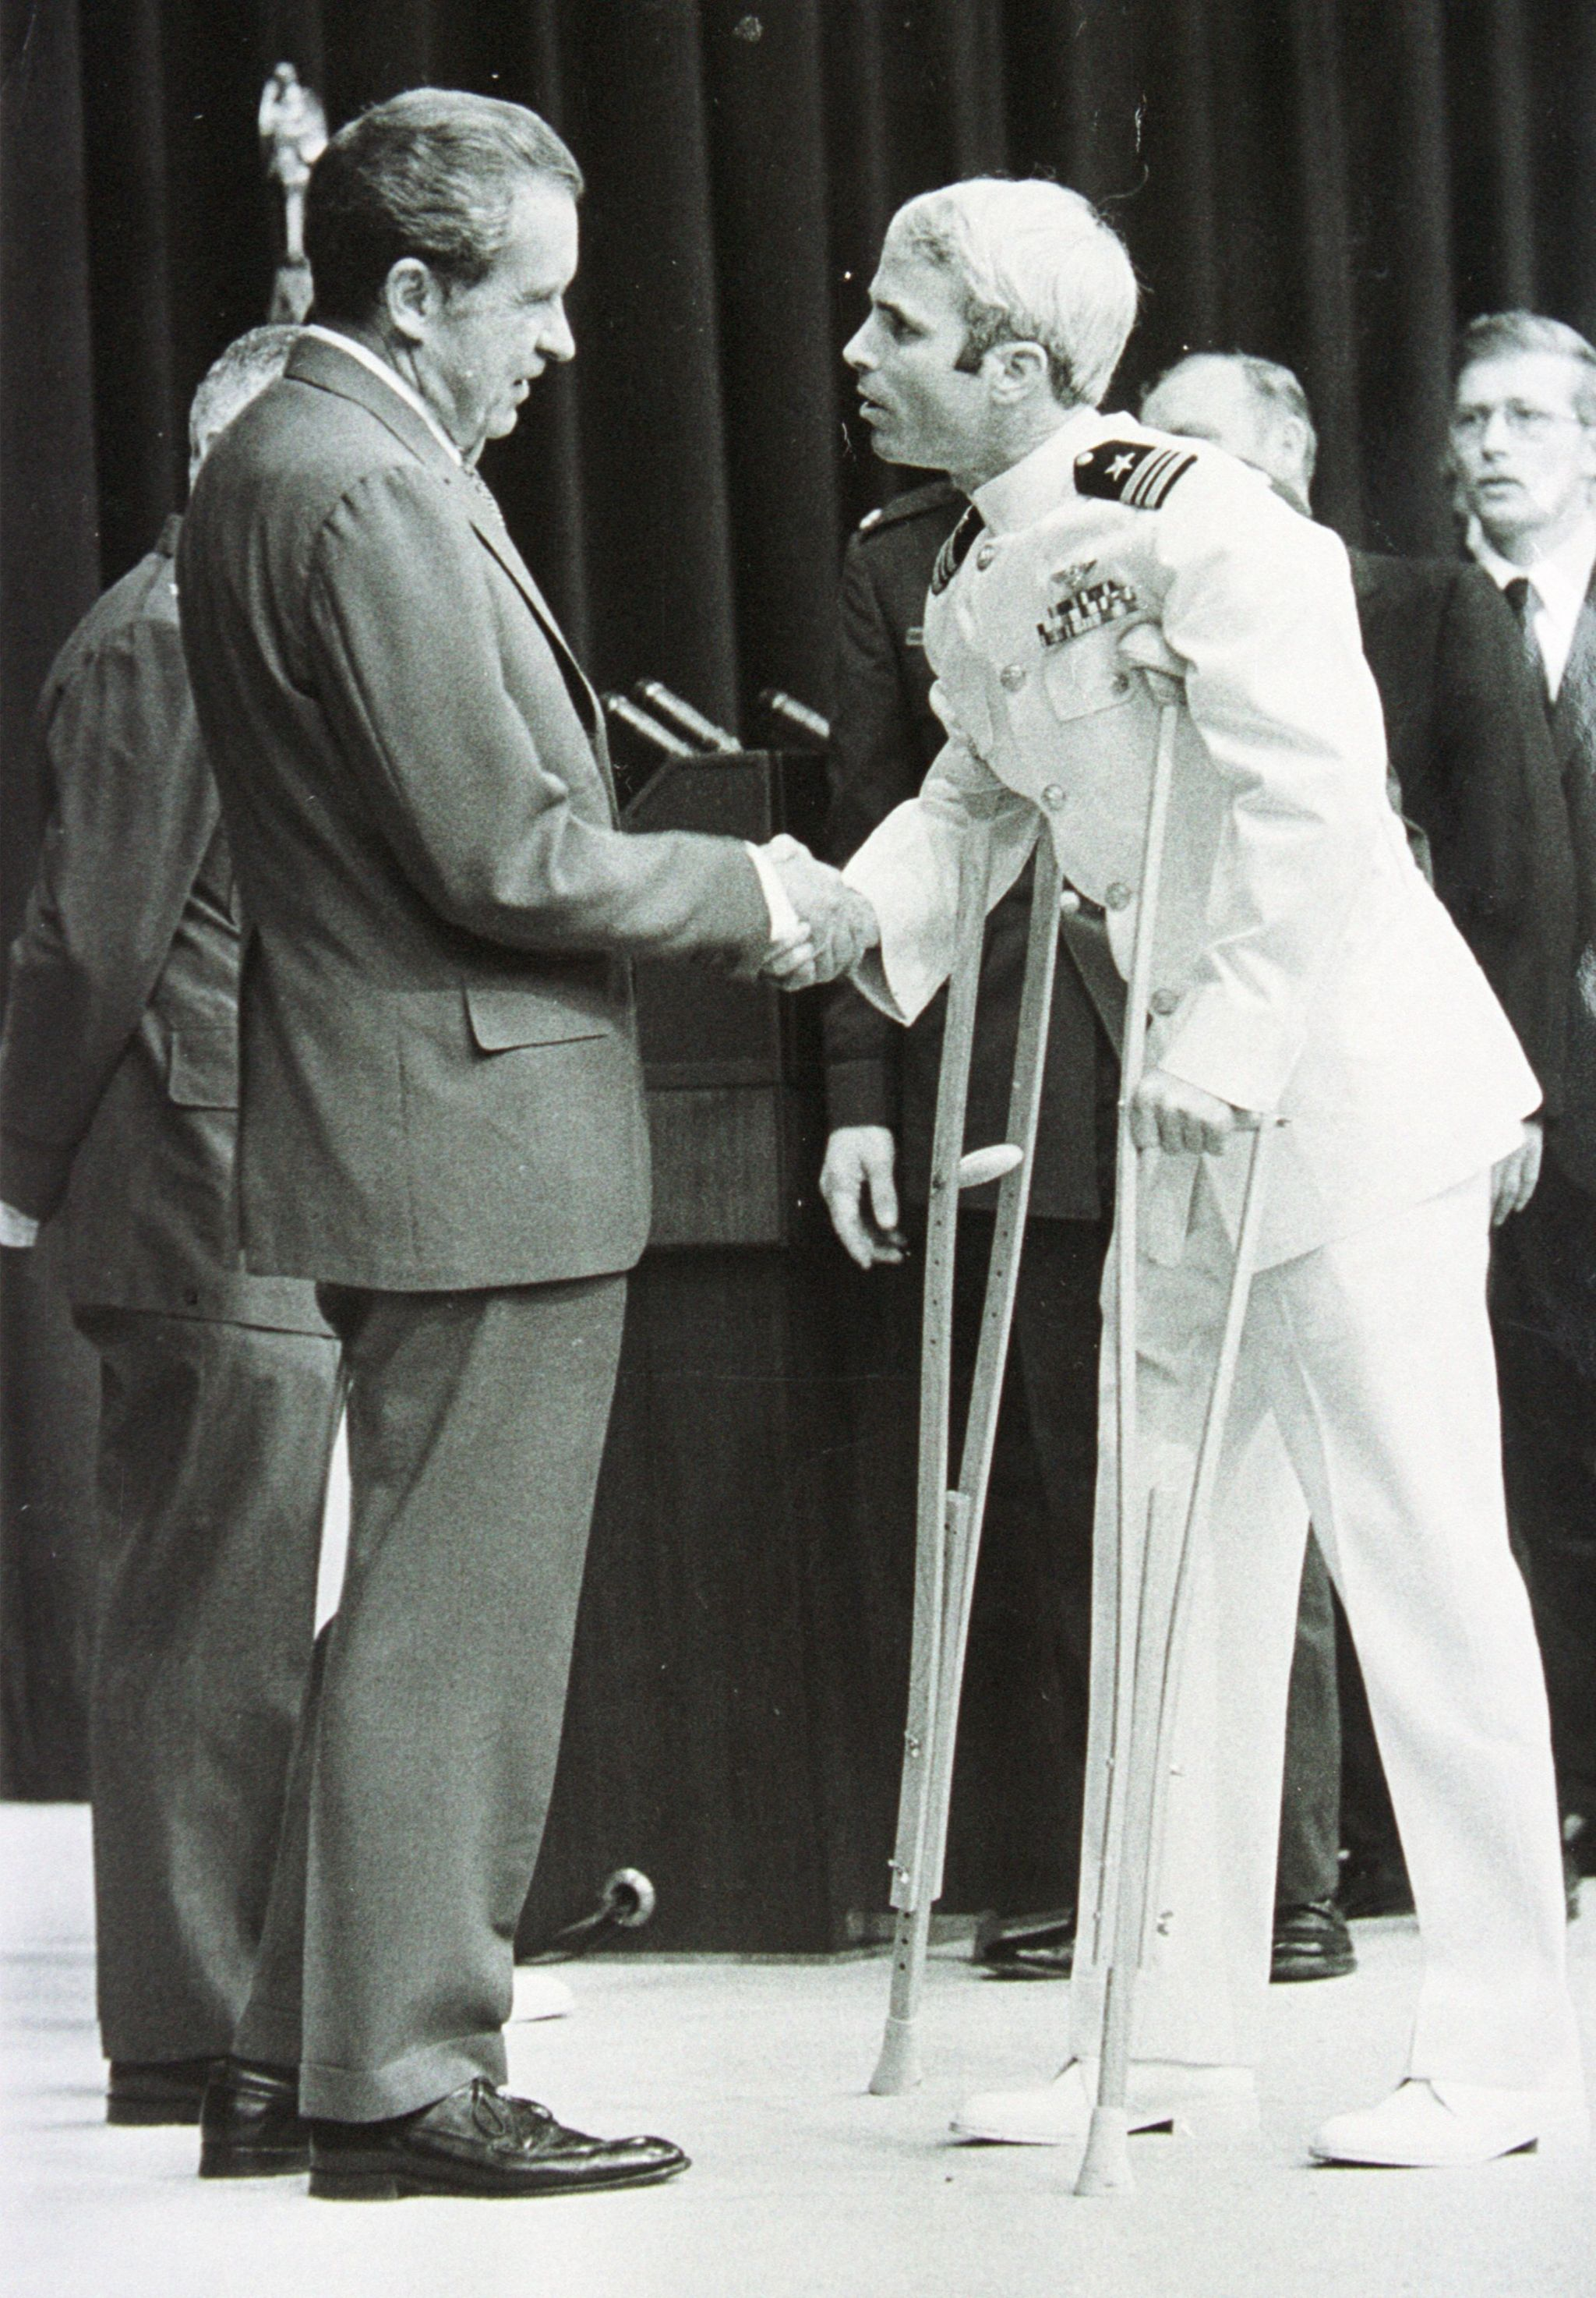 Lieutenant Commander John Mccain Is Welcomed By U.S. President Richard Nixon Upon Mccain's Release From Five And One-Half Years As A P.O.W. During The Vietnam War May 24, 1973 In Washington, D.C